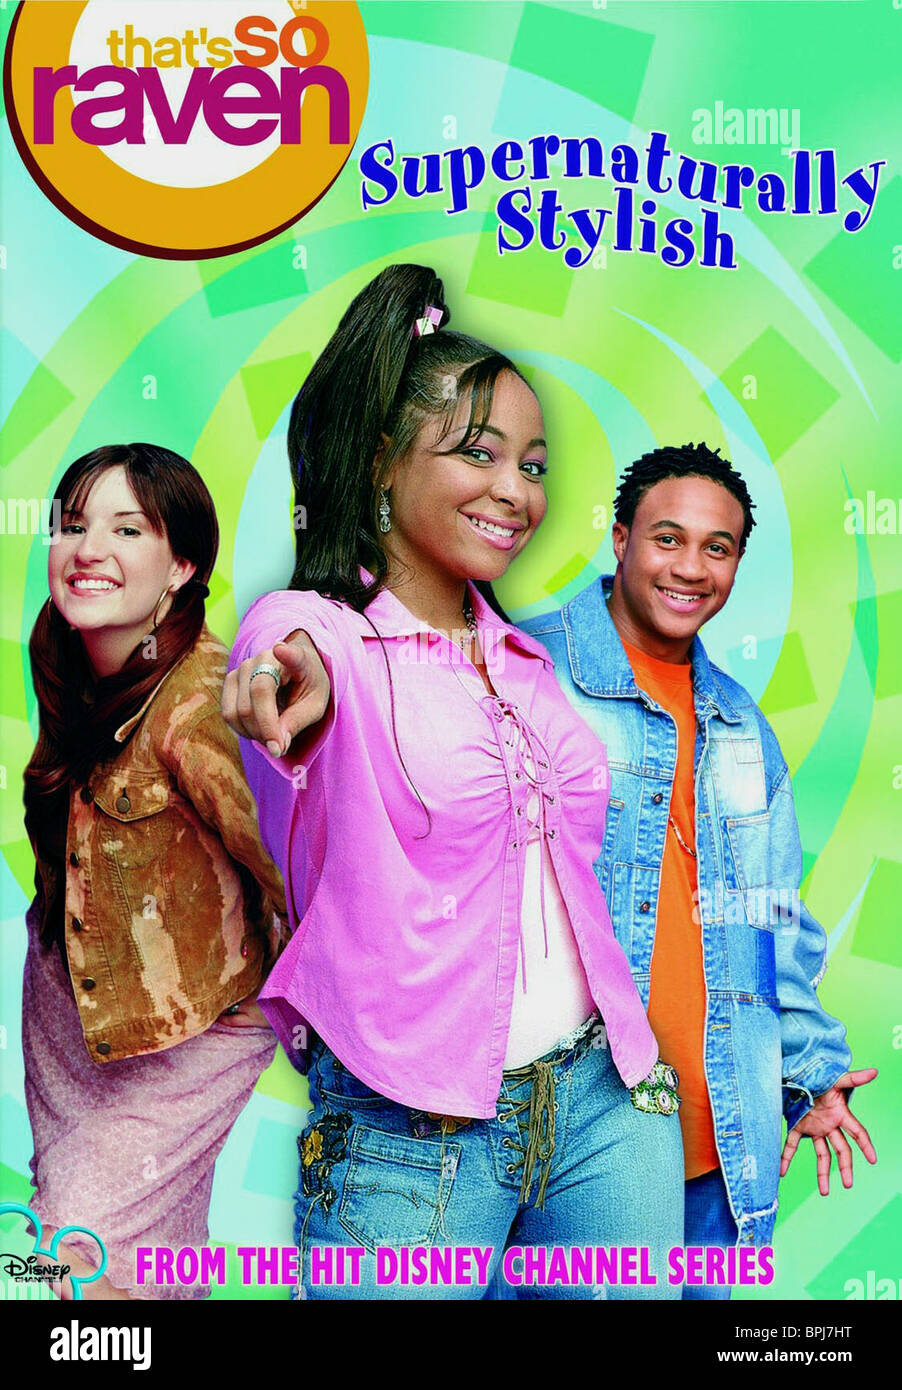 ANNELIESE VAN DER POL RAVEN & ORLANDO BROWN THAT'S SO RAVEN (2002) - Stock Image